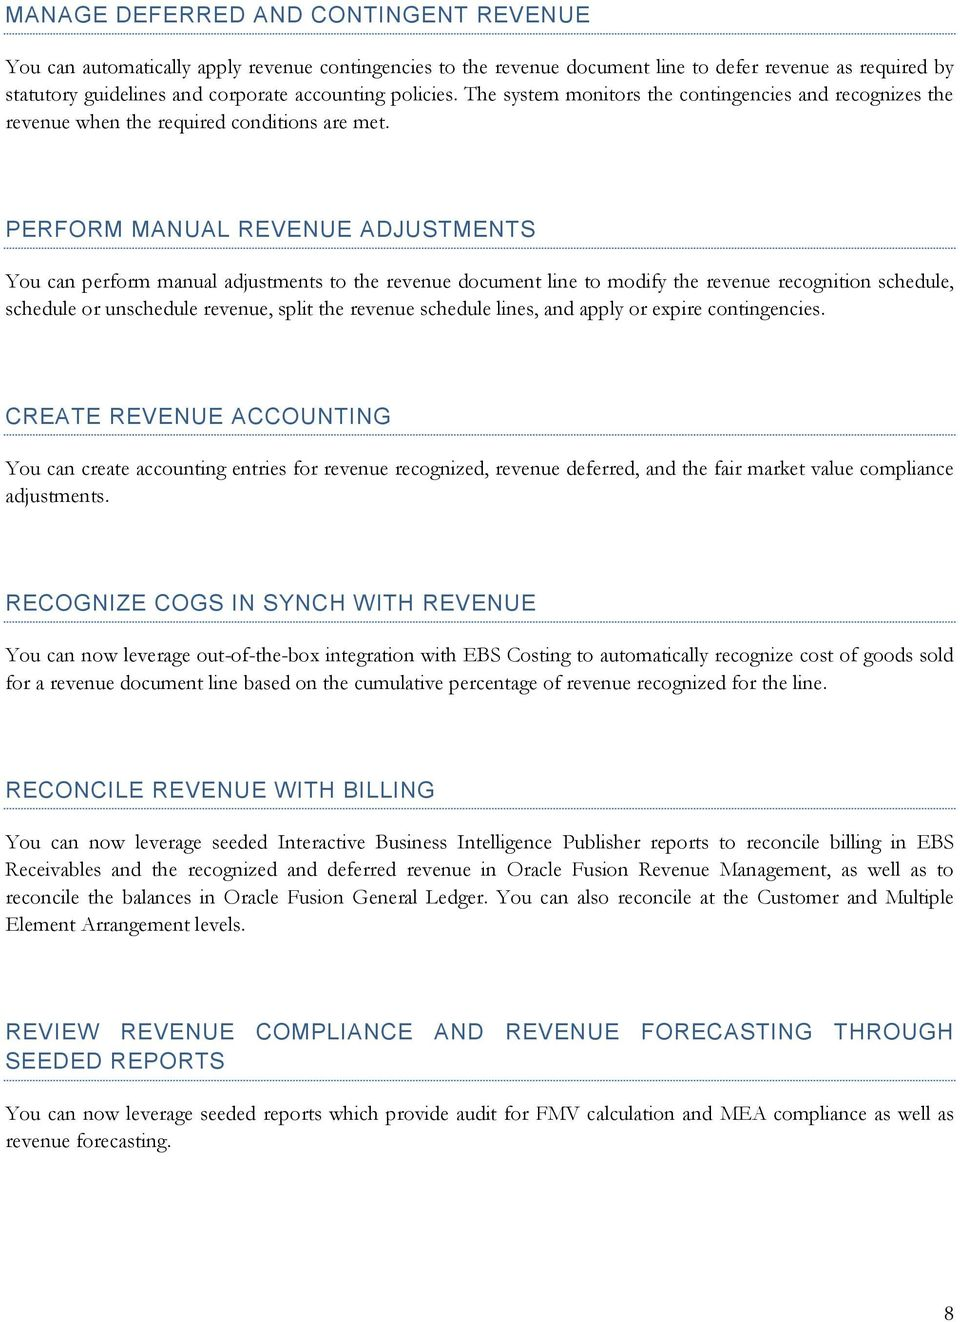 PERFORM MANUAL REVENUE ADJUSTMENTS You can perform manual adjustments to the revenue document line to modify the revenue recognition schedule, schedule or unschedule revenue, split the revenue